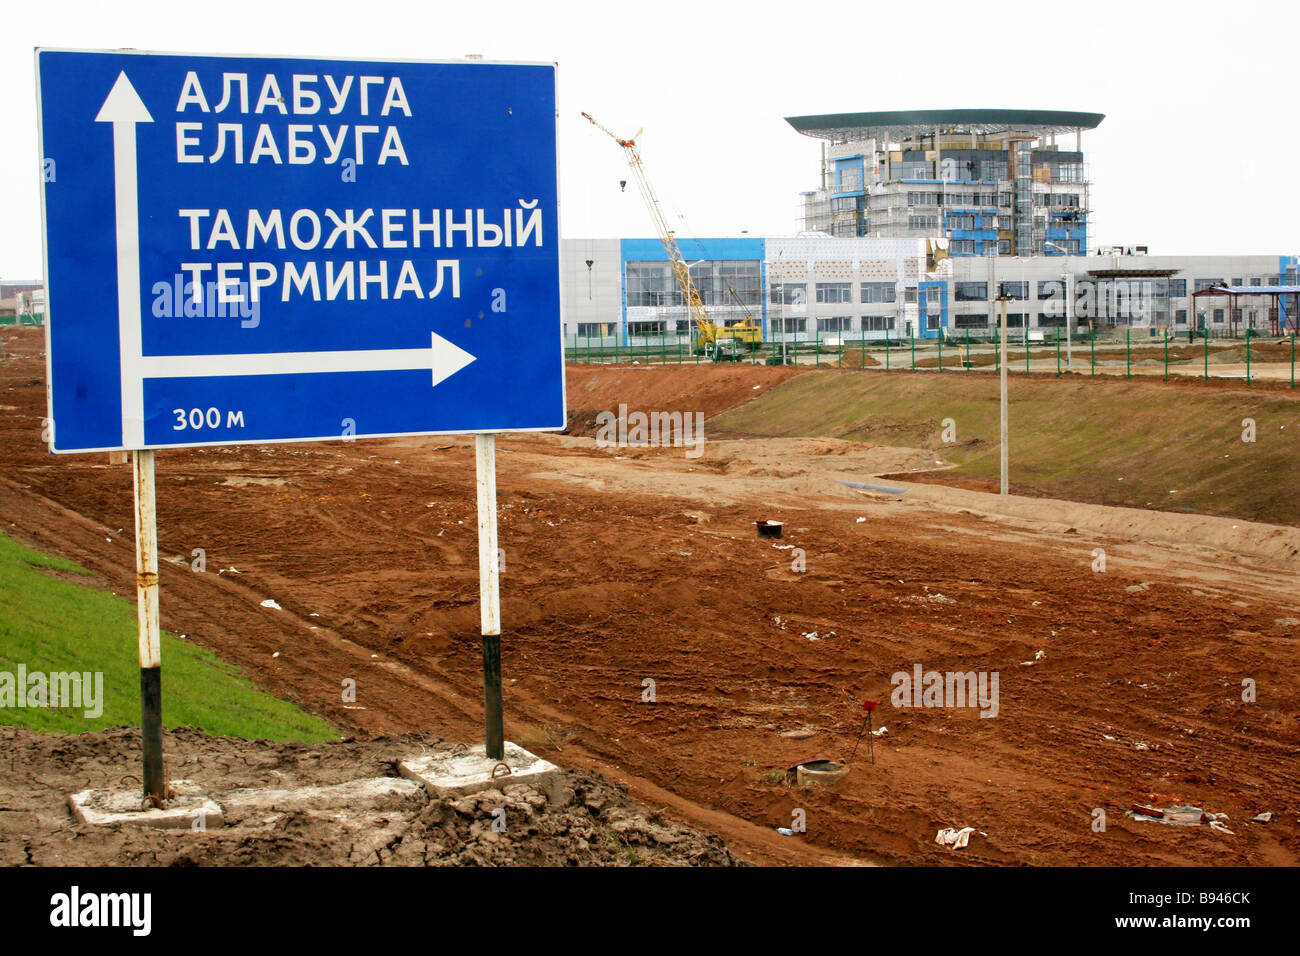 L'« Alabouga au Tatarstan zone économique libre Photo Stock